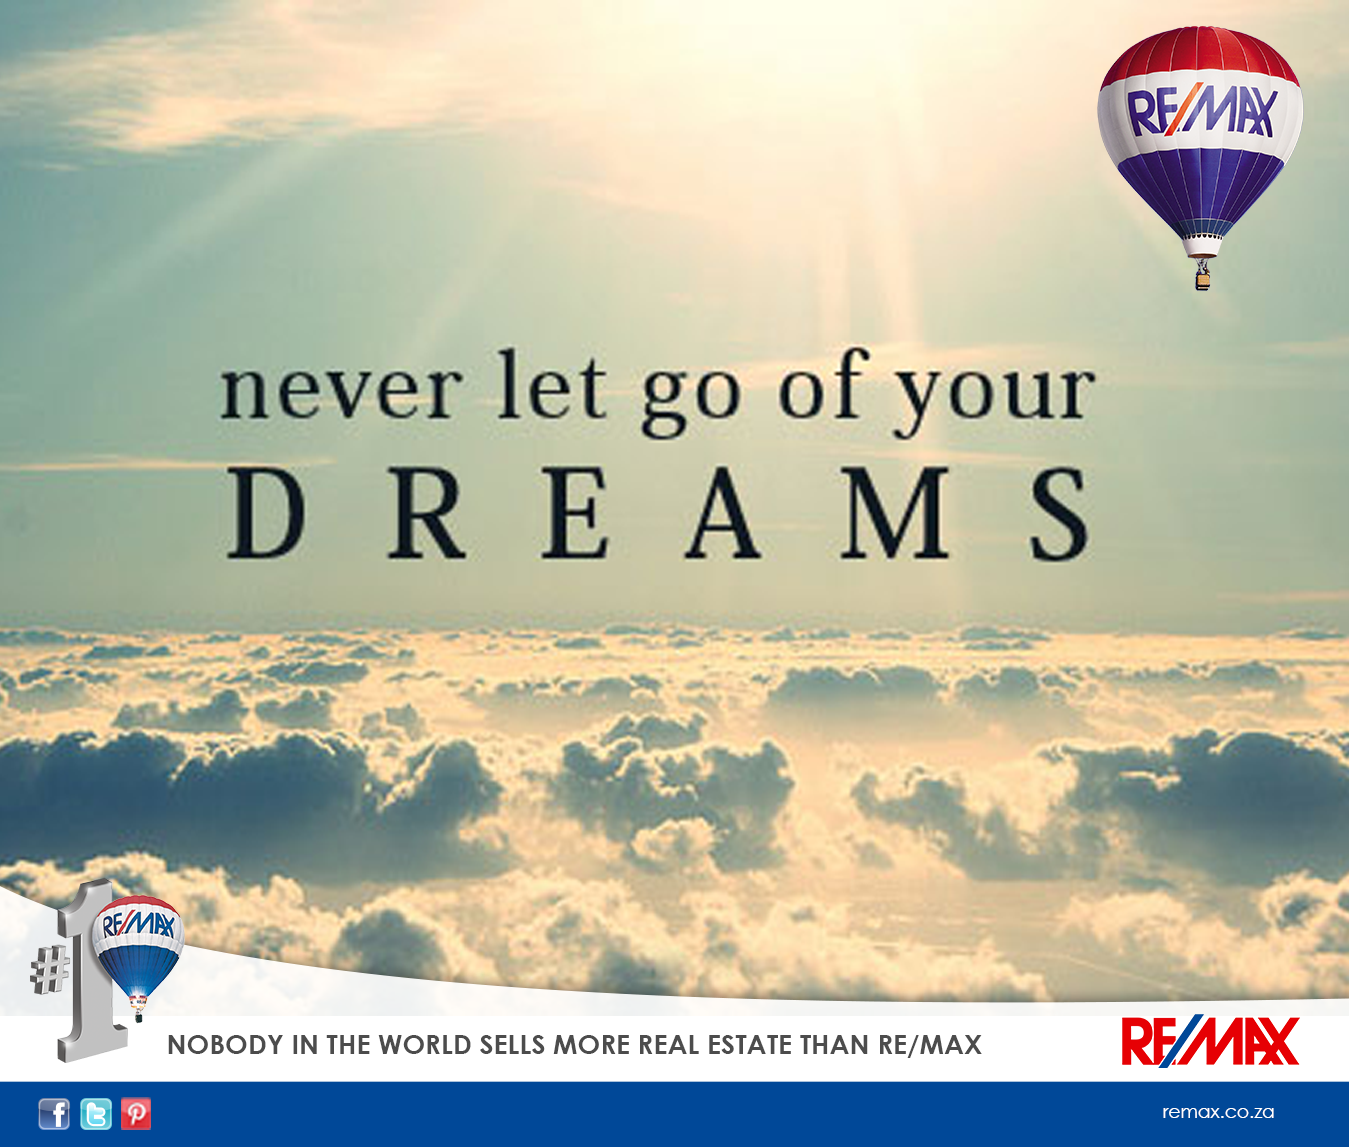 Never let go of your dreams. #remaxsa